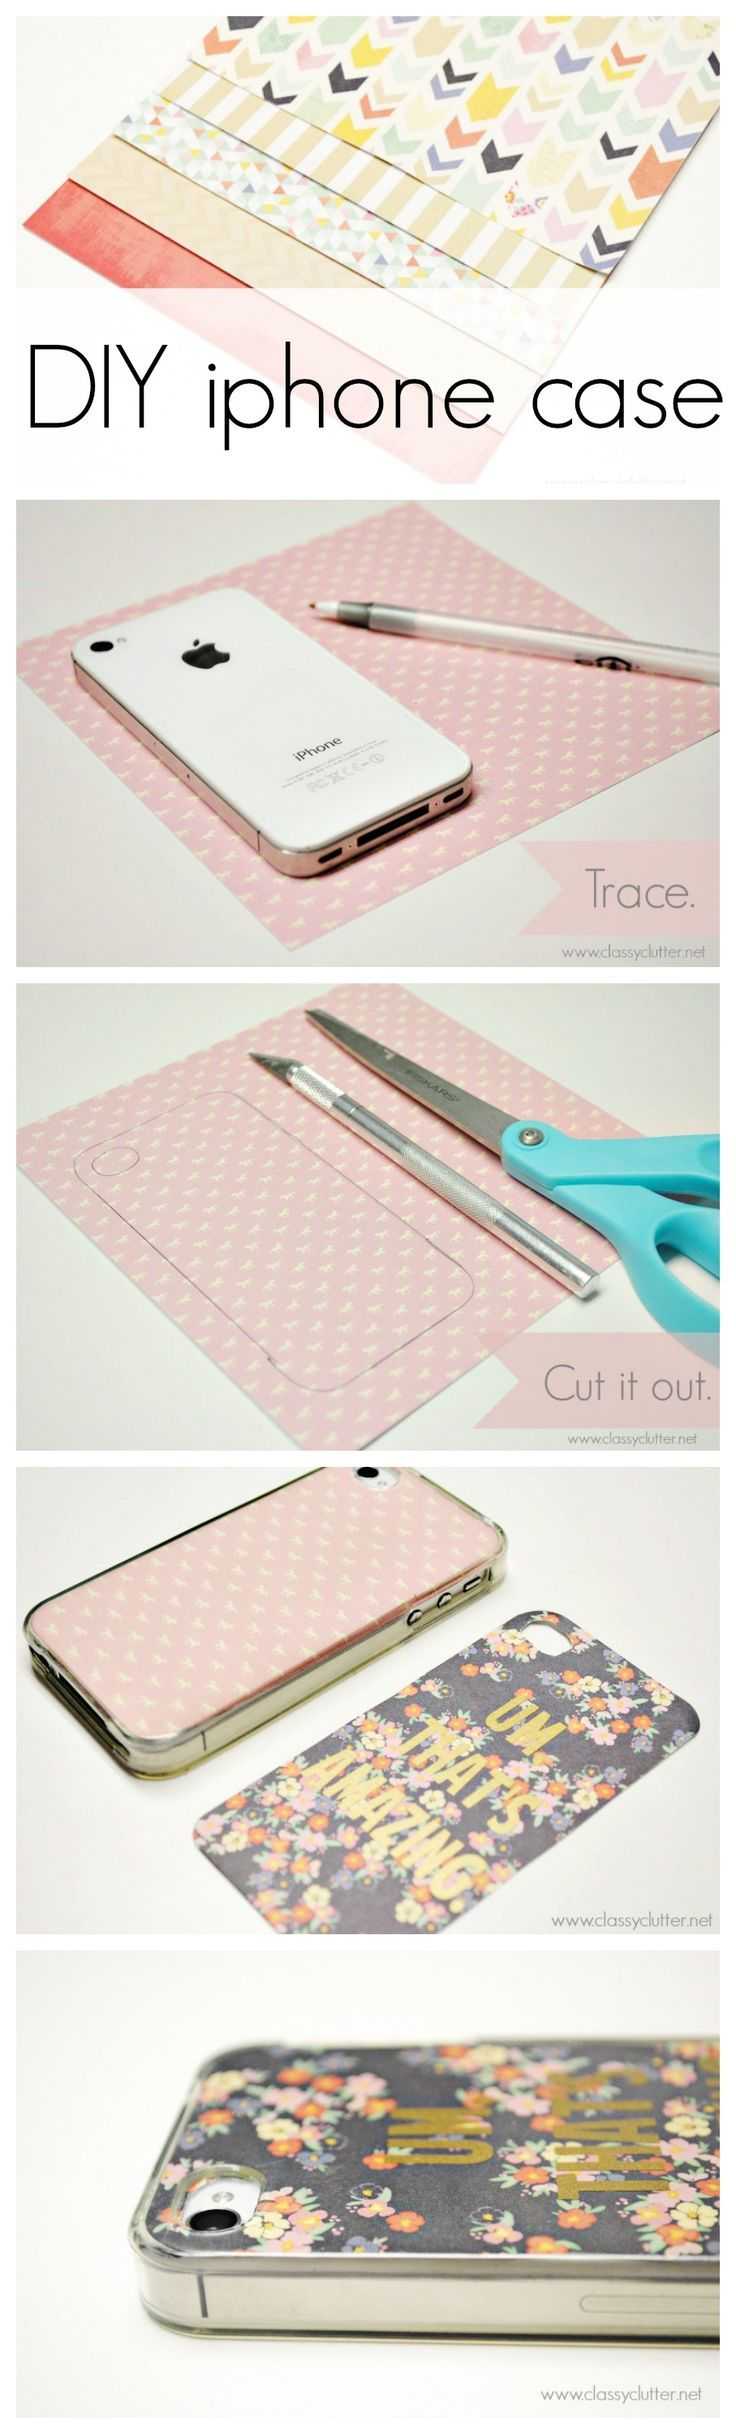 DIY iphone case - this would be such a cute, inexpensive gift! Creative Ideas Quirky Ideas